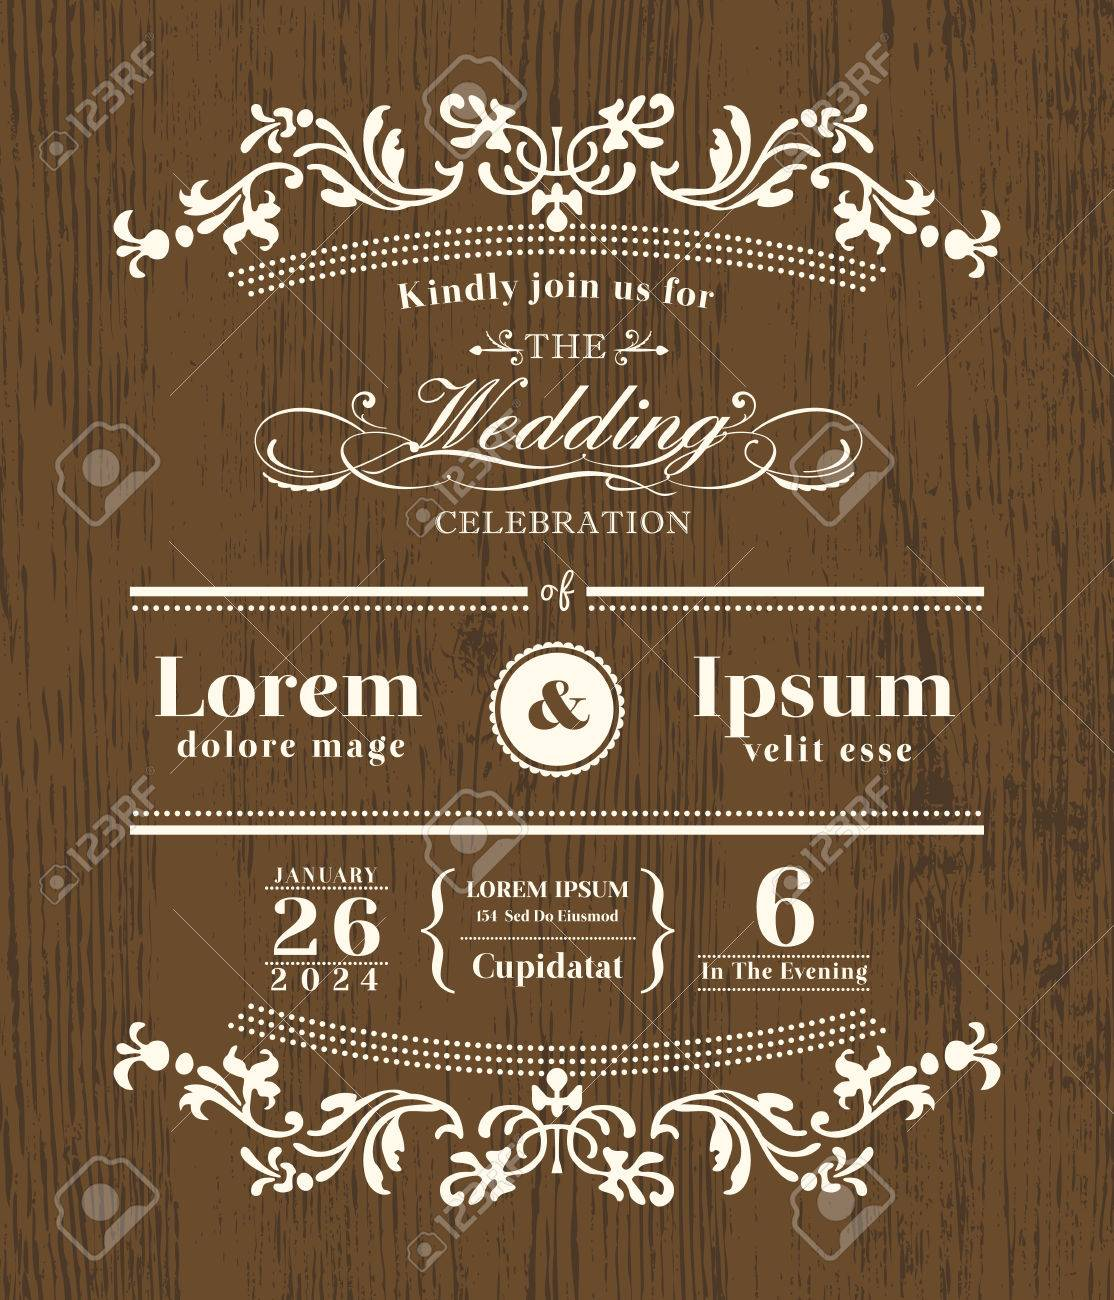 Vintage typography wedding invitation design template on wooden vintage typography wedding invitation design template on wooden background stock vector 31706128 stopboris Images